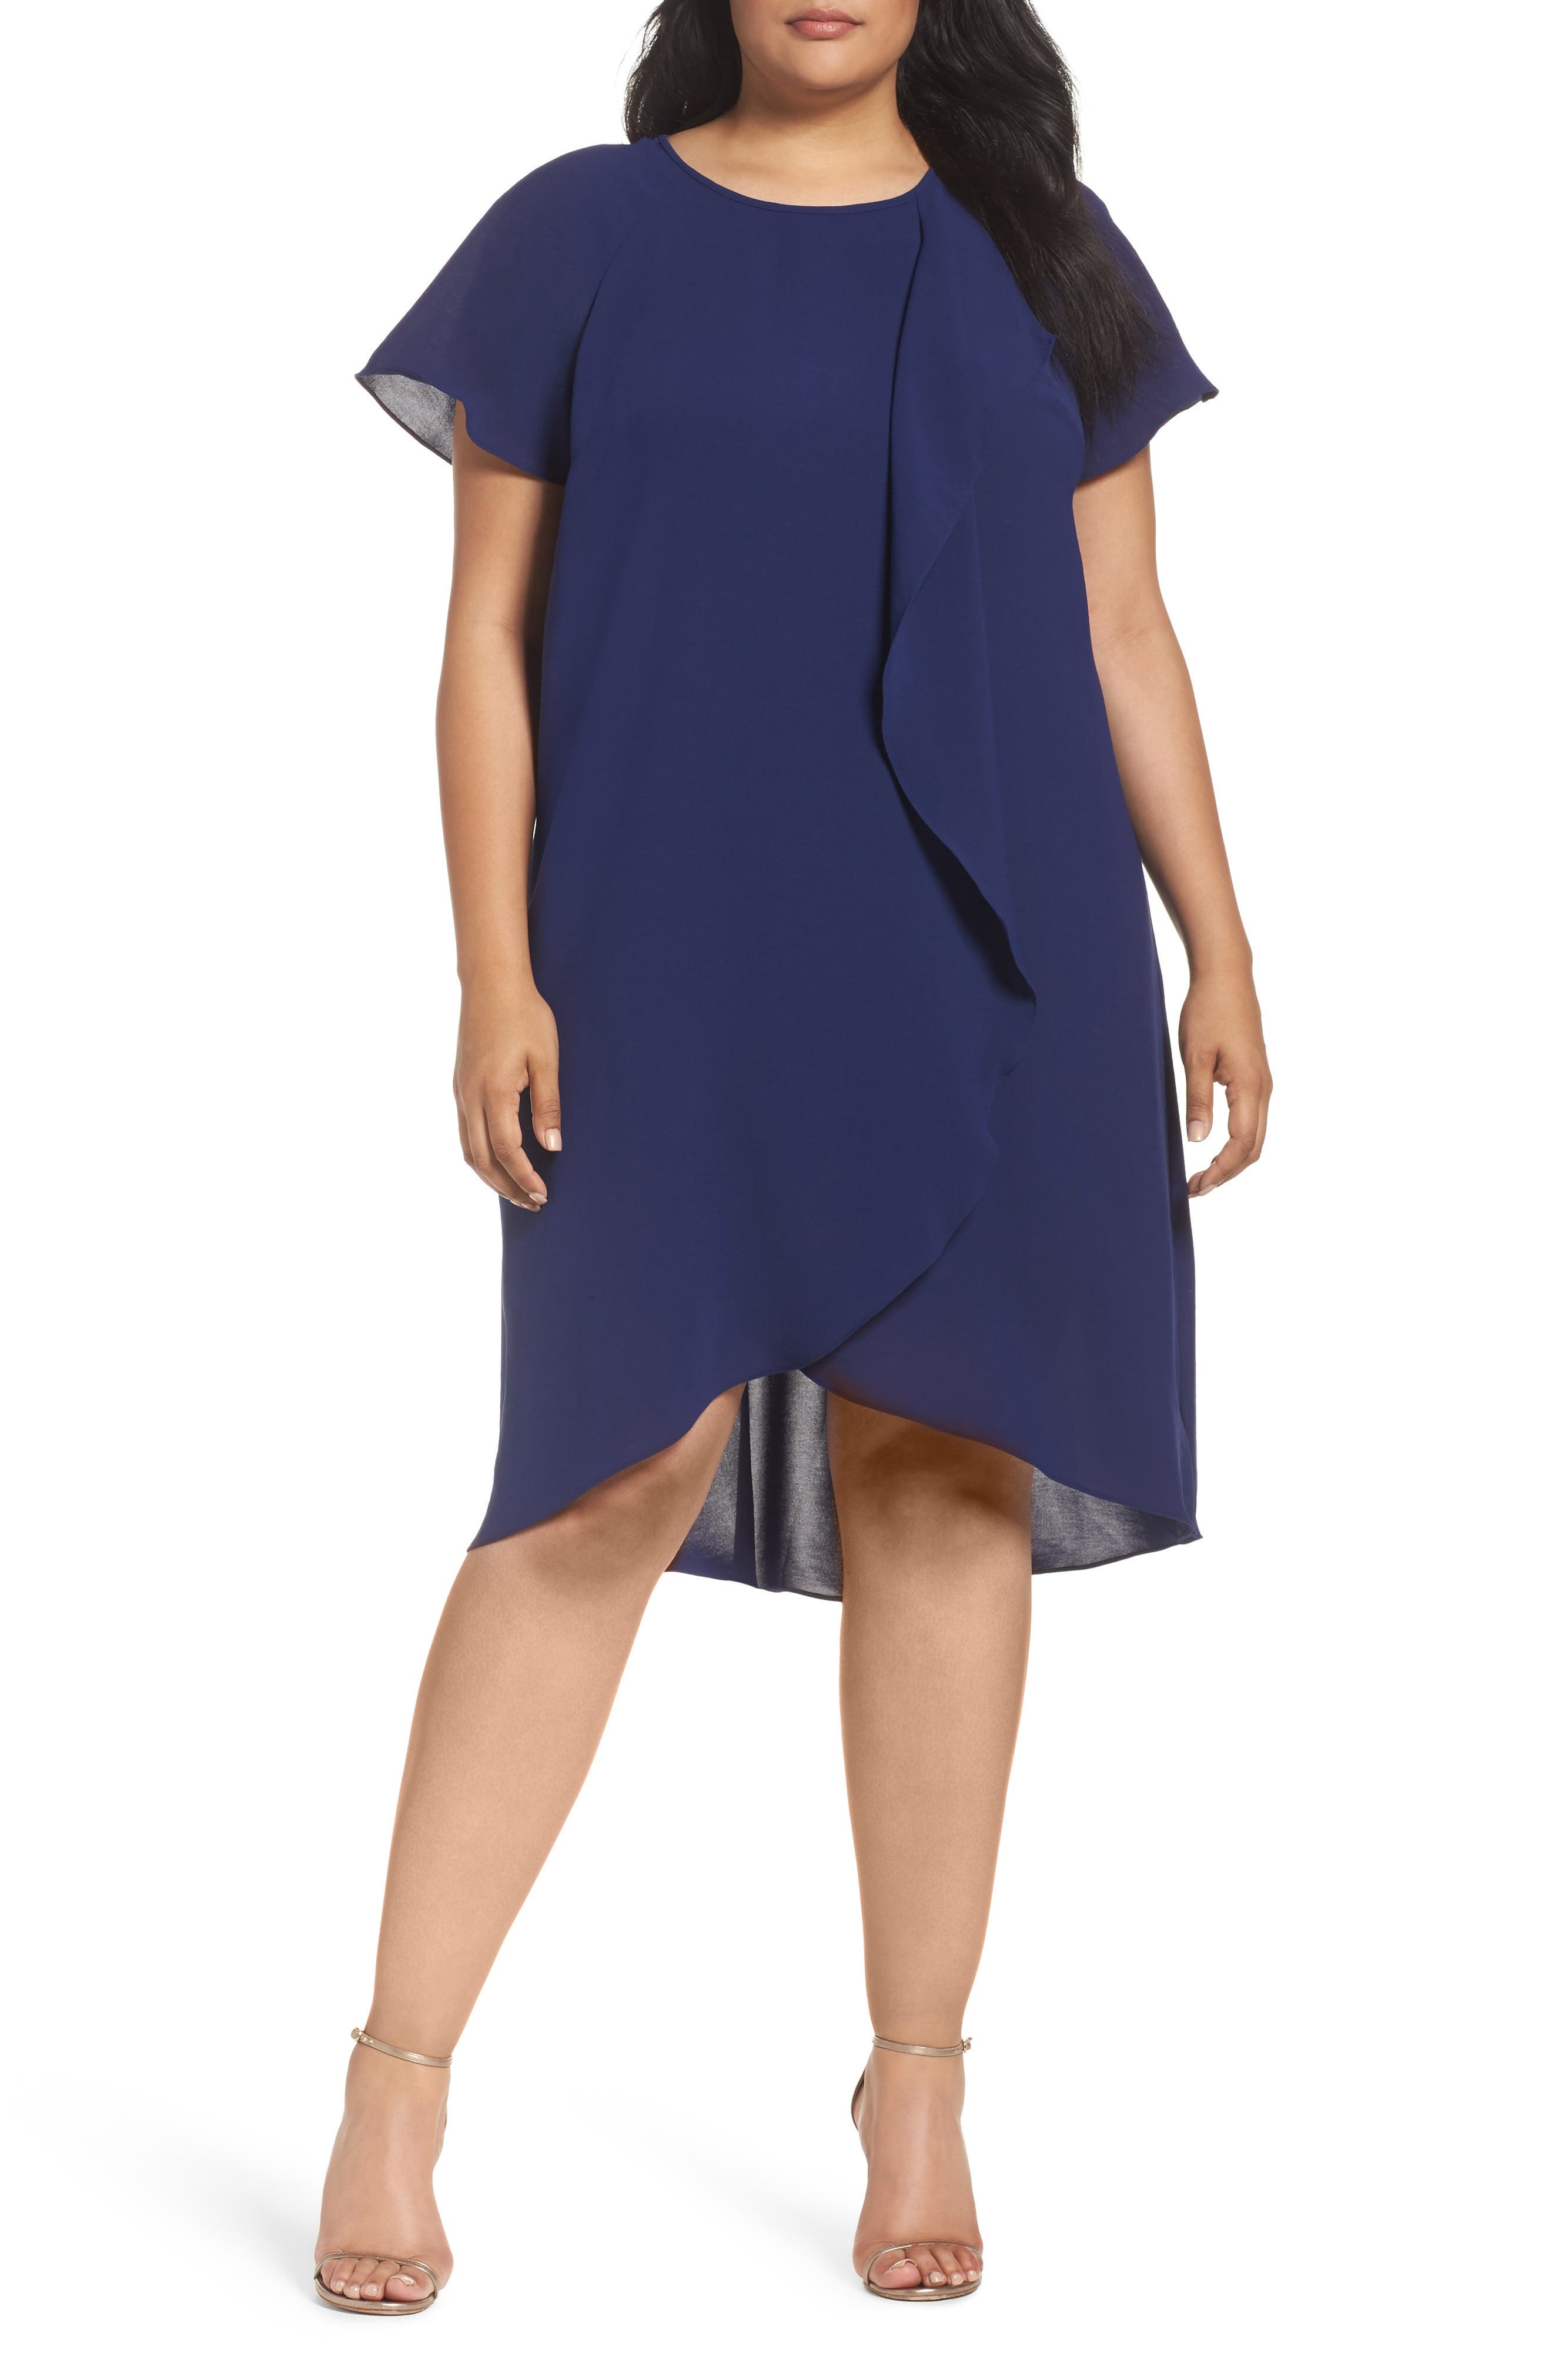 Adrianna Papell Crepe Ruffle Drape Shift Dress (Plus Size)